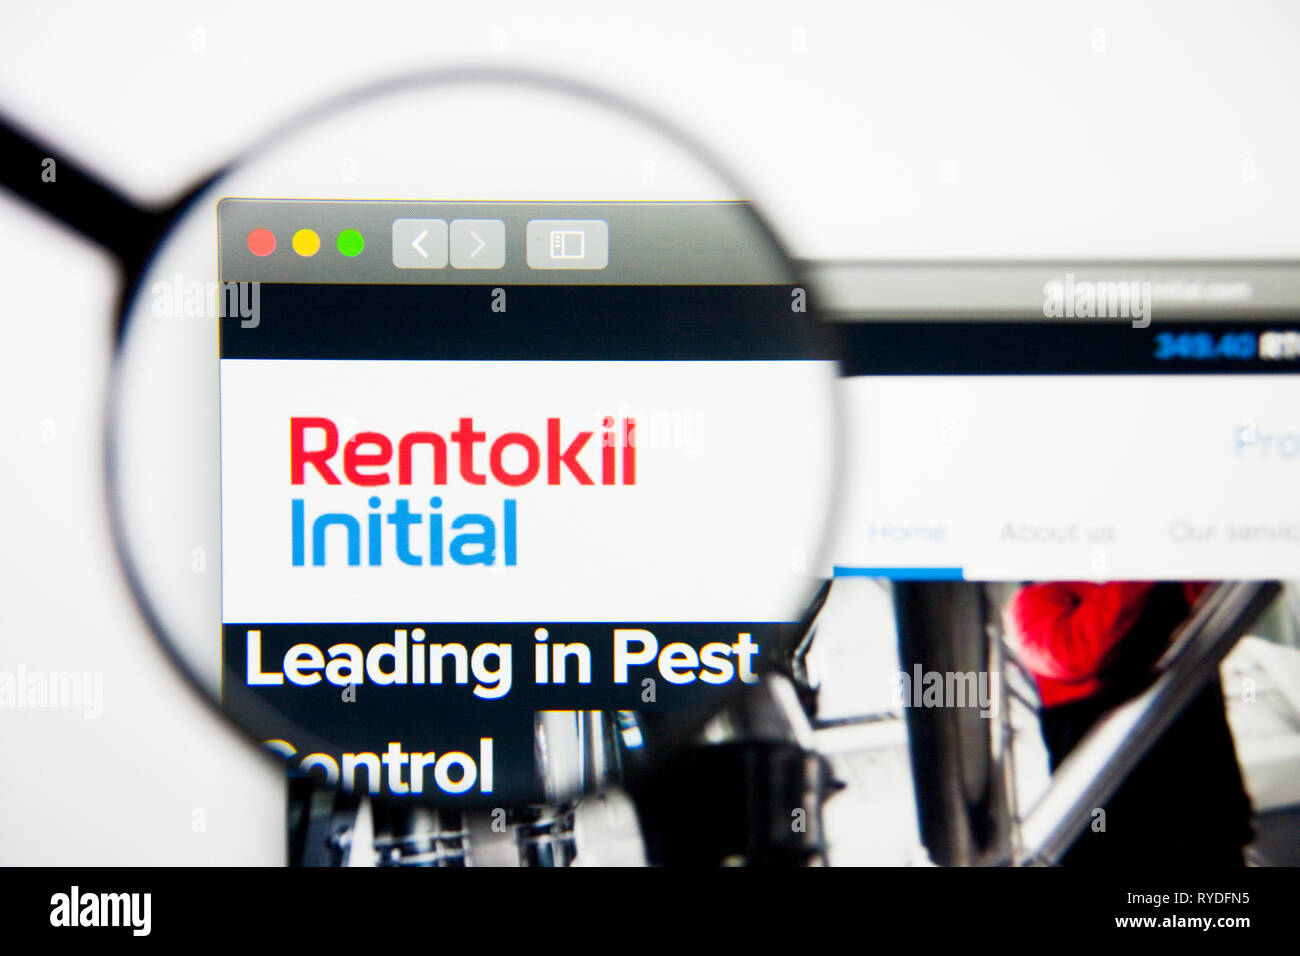 Los Angeles, California, USA - 28 February 2019: Rentokil Initial website homepage. Rentokil Initial logo visible on display screen, Illustrative - Stock Image